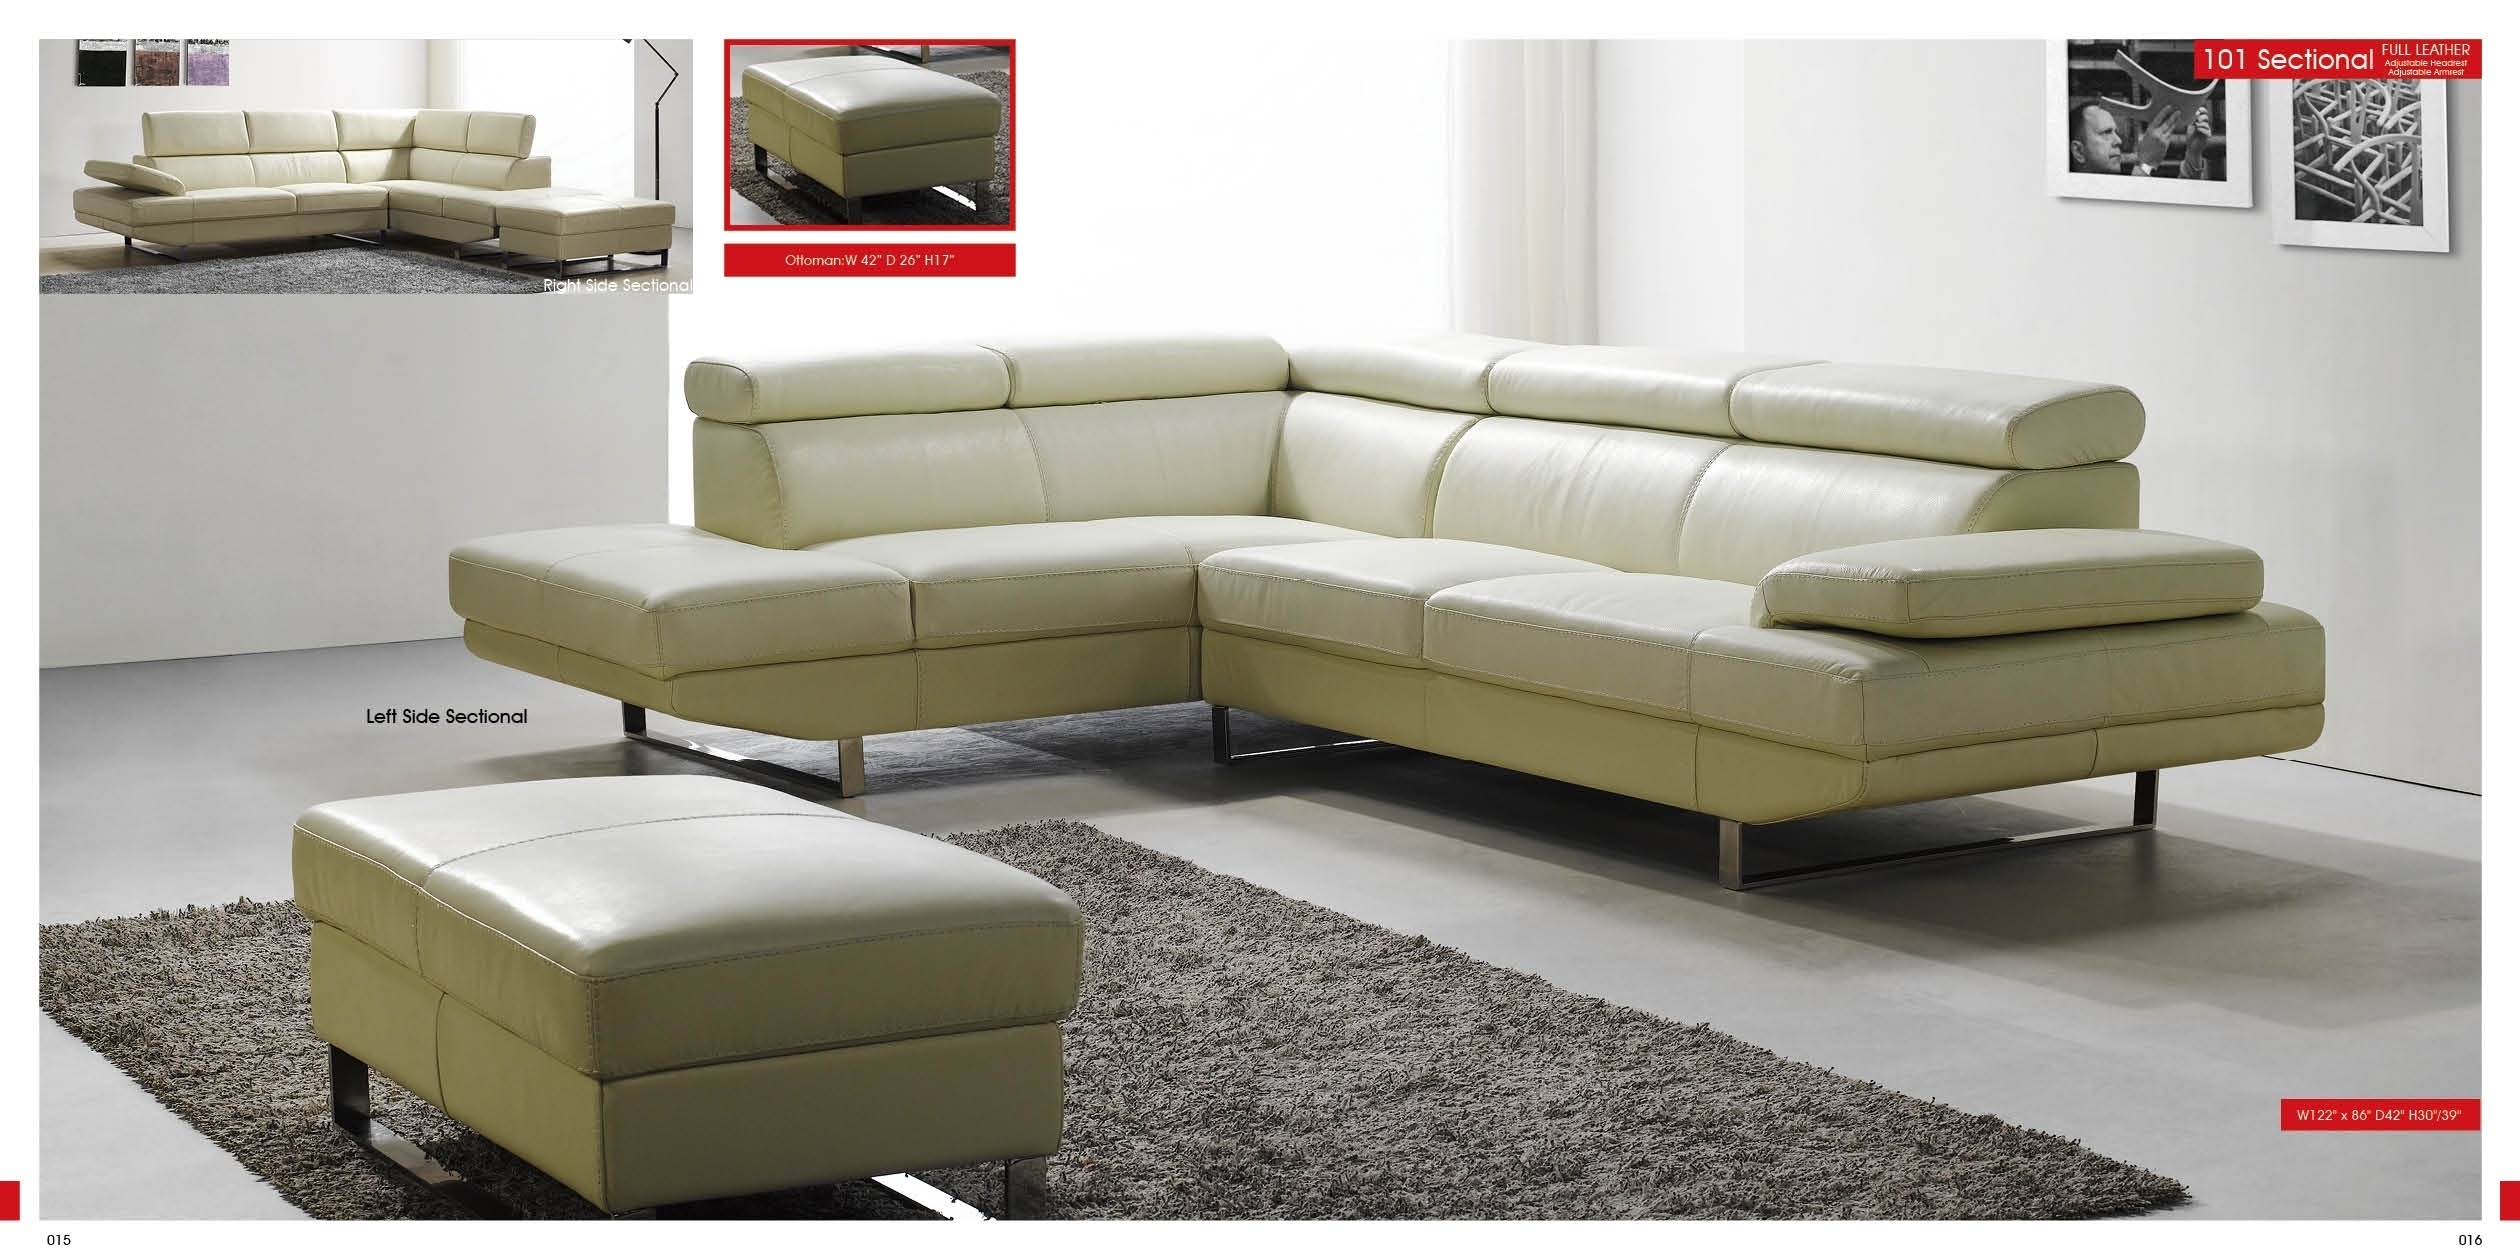 Featured Image of Sleek Sectional Sofas